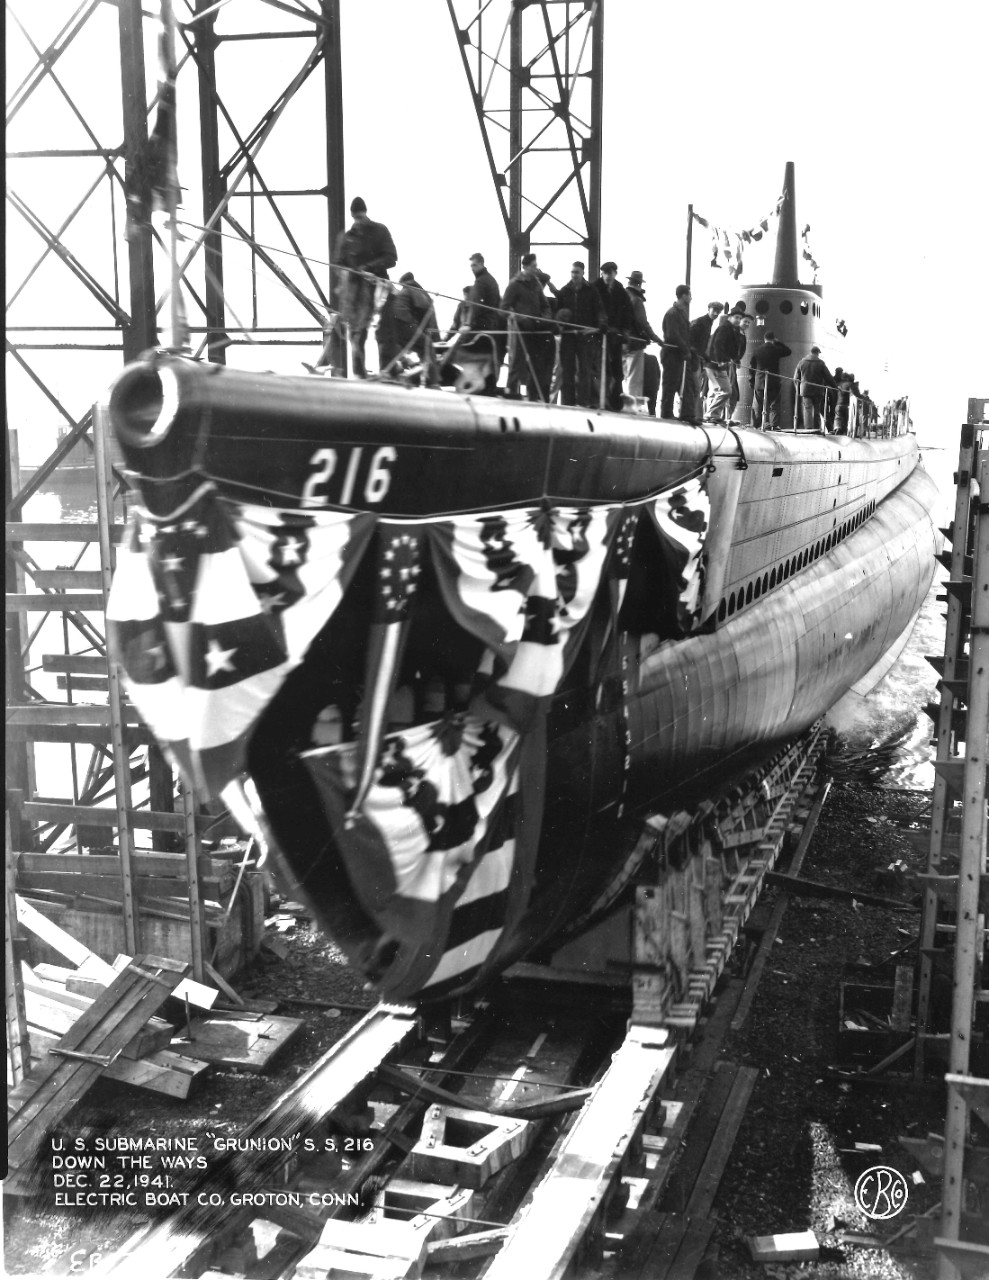 Grunion enters her element at the Electric Boat Co., Groton, on 22 December 1941. (U.S. Navy Photograph, Naval History and Heritage Command, Ships History Collection, Washington, D.C.)